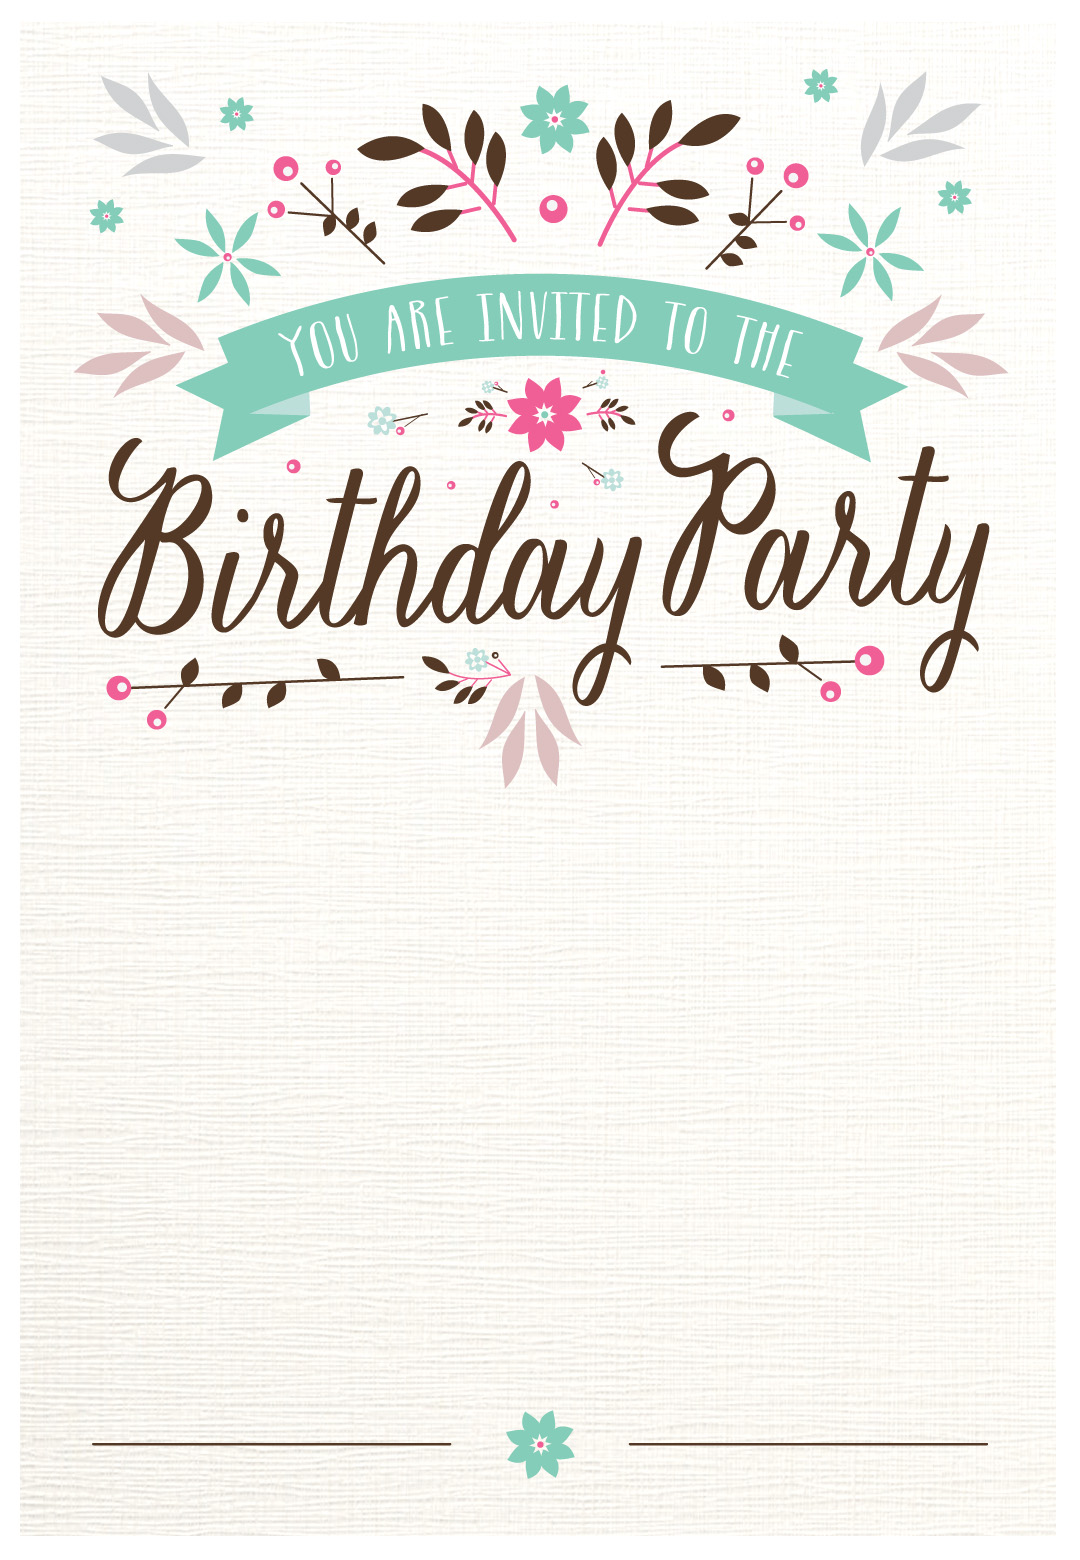 print your own birthday invitations ; Birthday-invitation-templates-and-get-inspired-to-create-your-own-birthday-invitation-design-with-this-ideas-19